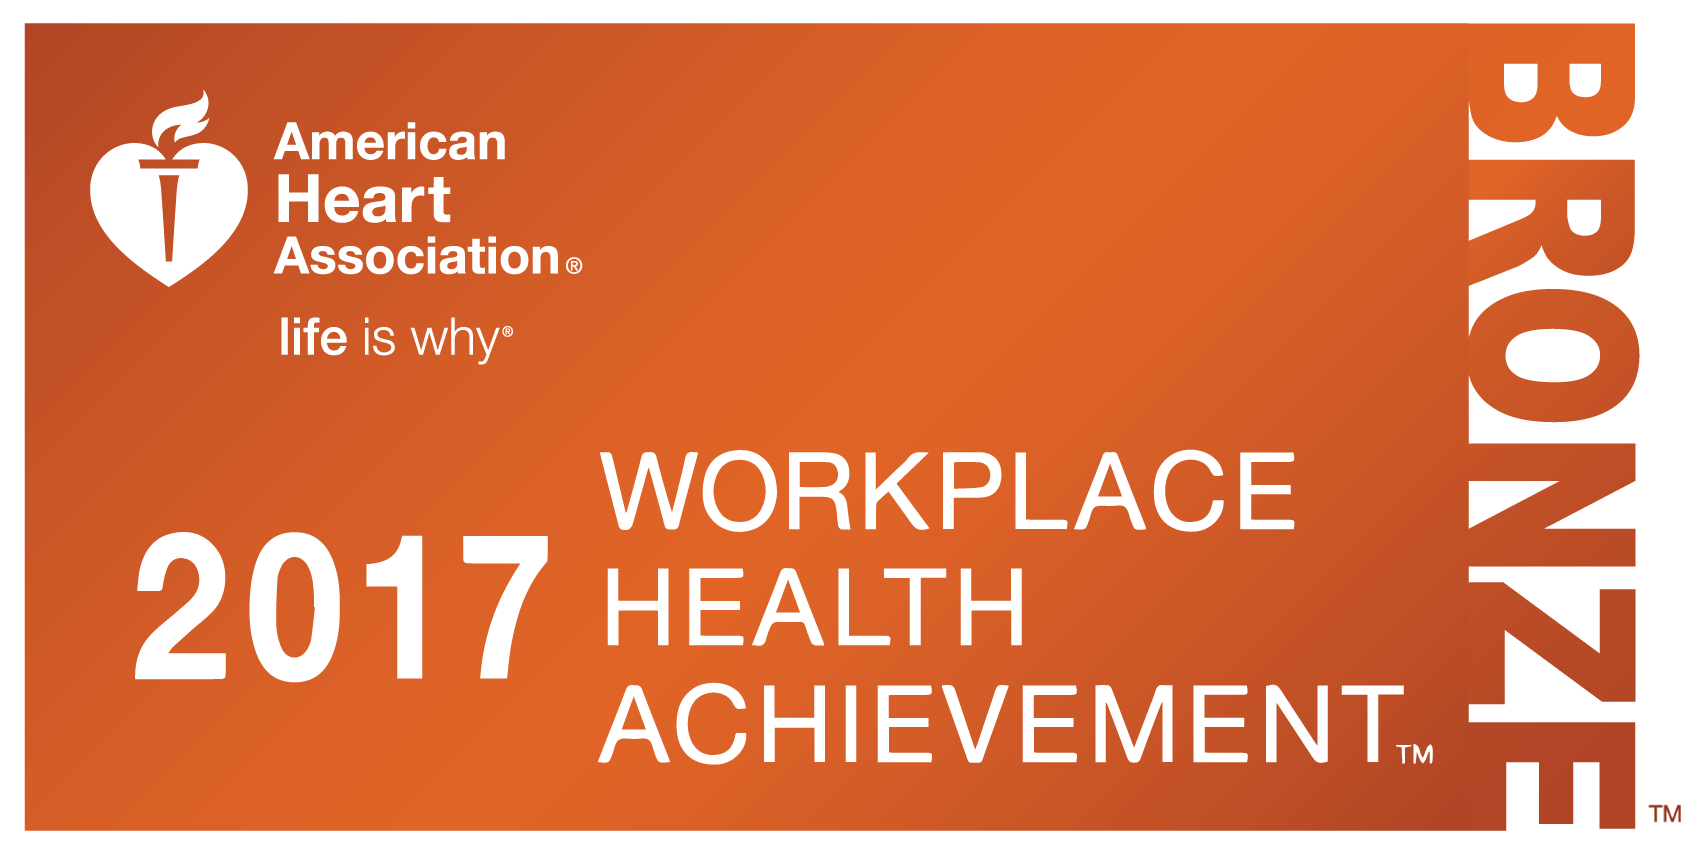 AHA-Workplace-Health-Achievement-2017